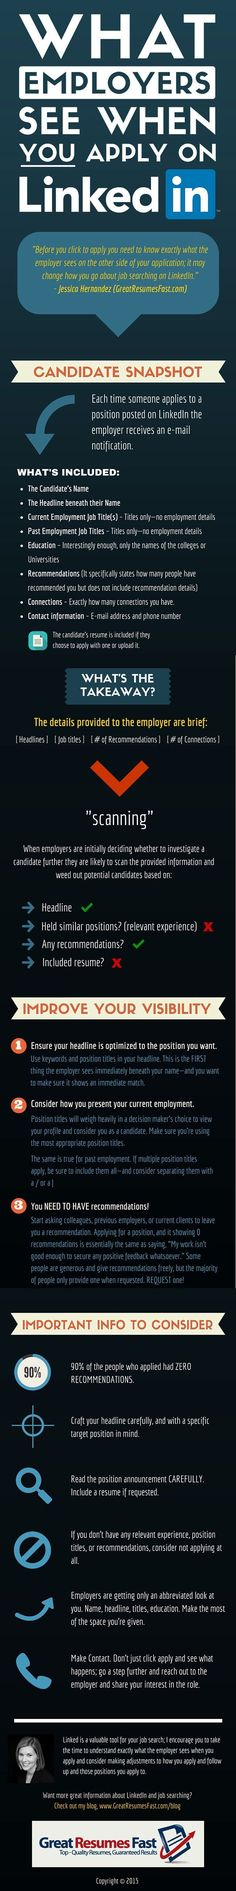 What Employers See When You Apply on LinkedIn | Great Resumes Fast | Jessica Holbrook Hernandez | www.greatresumesf... Resume Tips, Resume Skills, Resume Help, Job Resume, Sample Resume, Executive Resume, Executive Job Search, Career Planning, Job Career